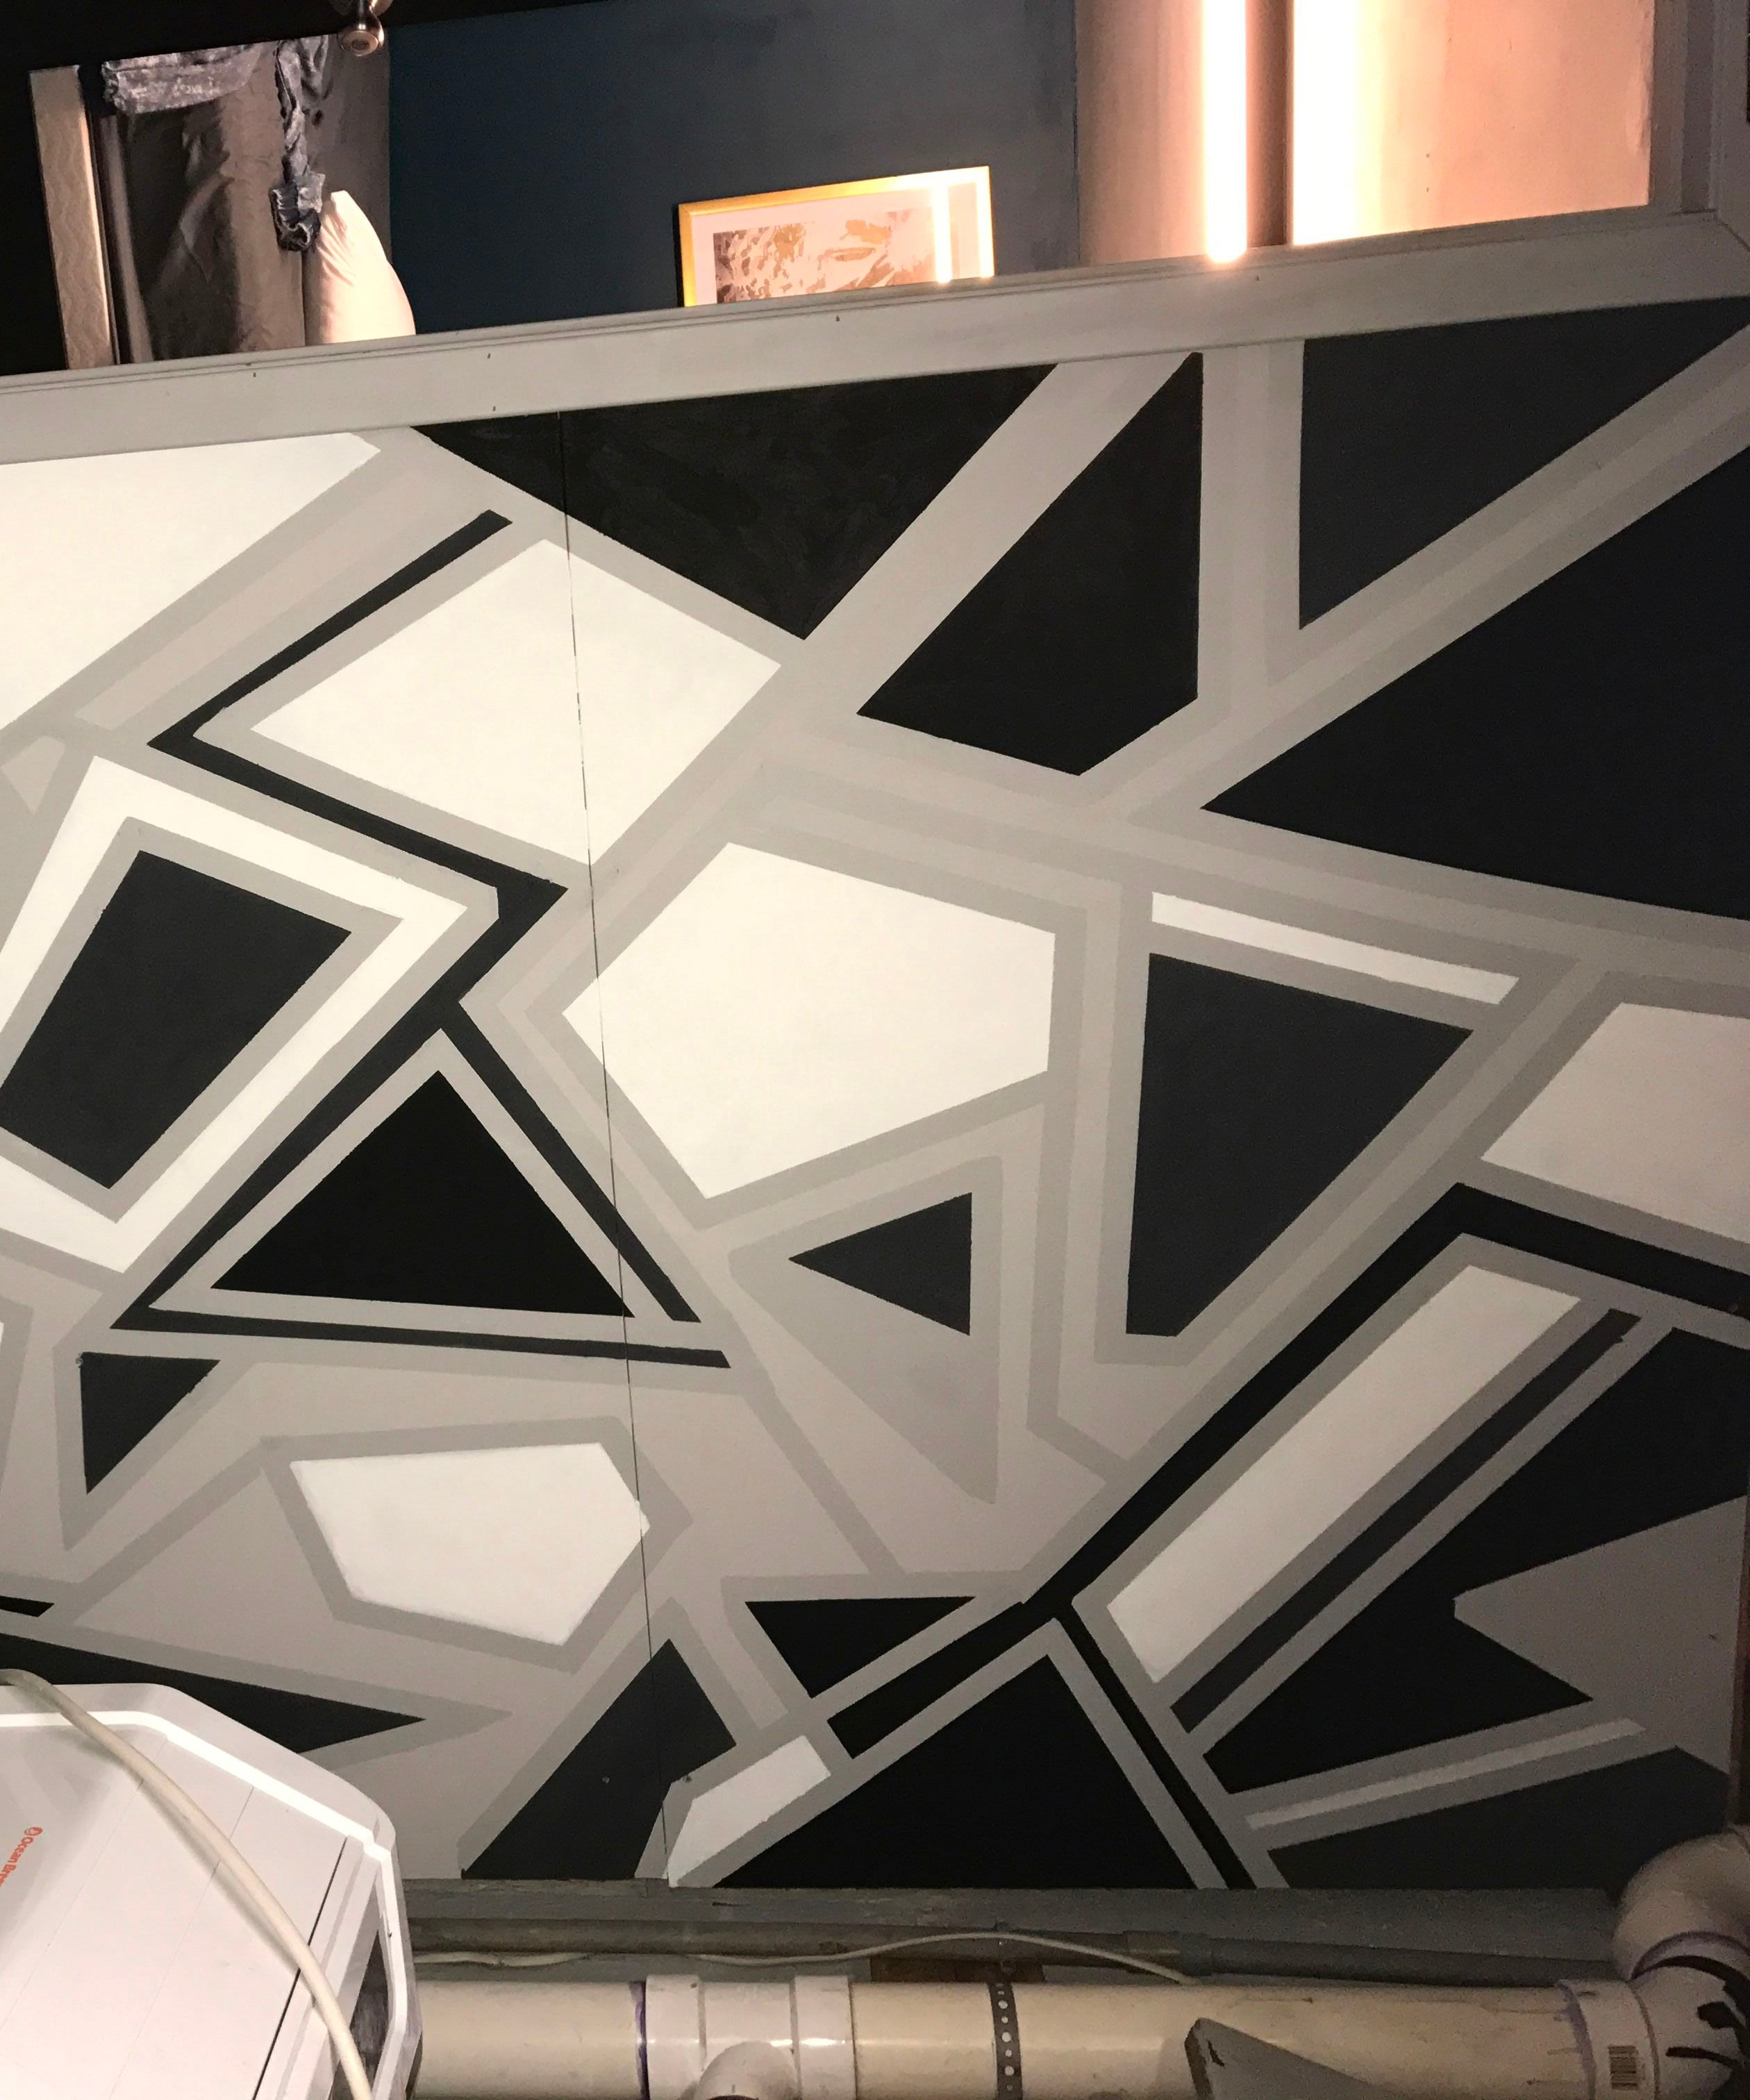 Geometric Wall Paint 7 Steps With Pictures Instructables,Painting An Accent Wall Ideas